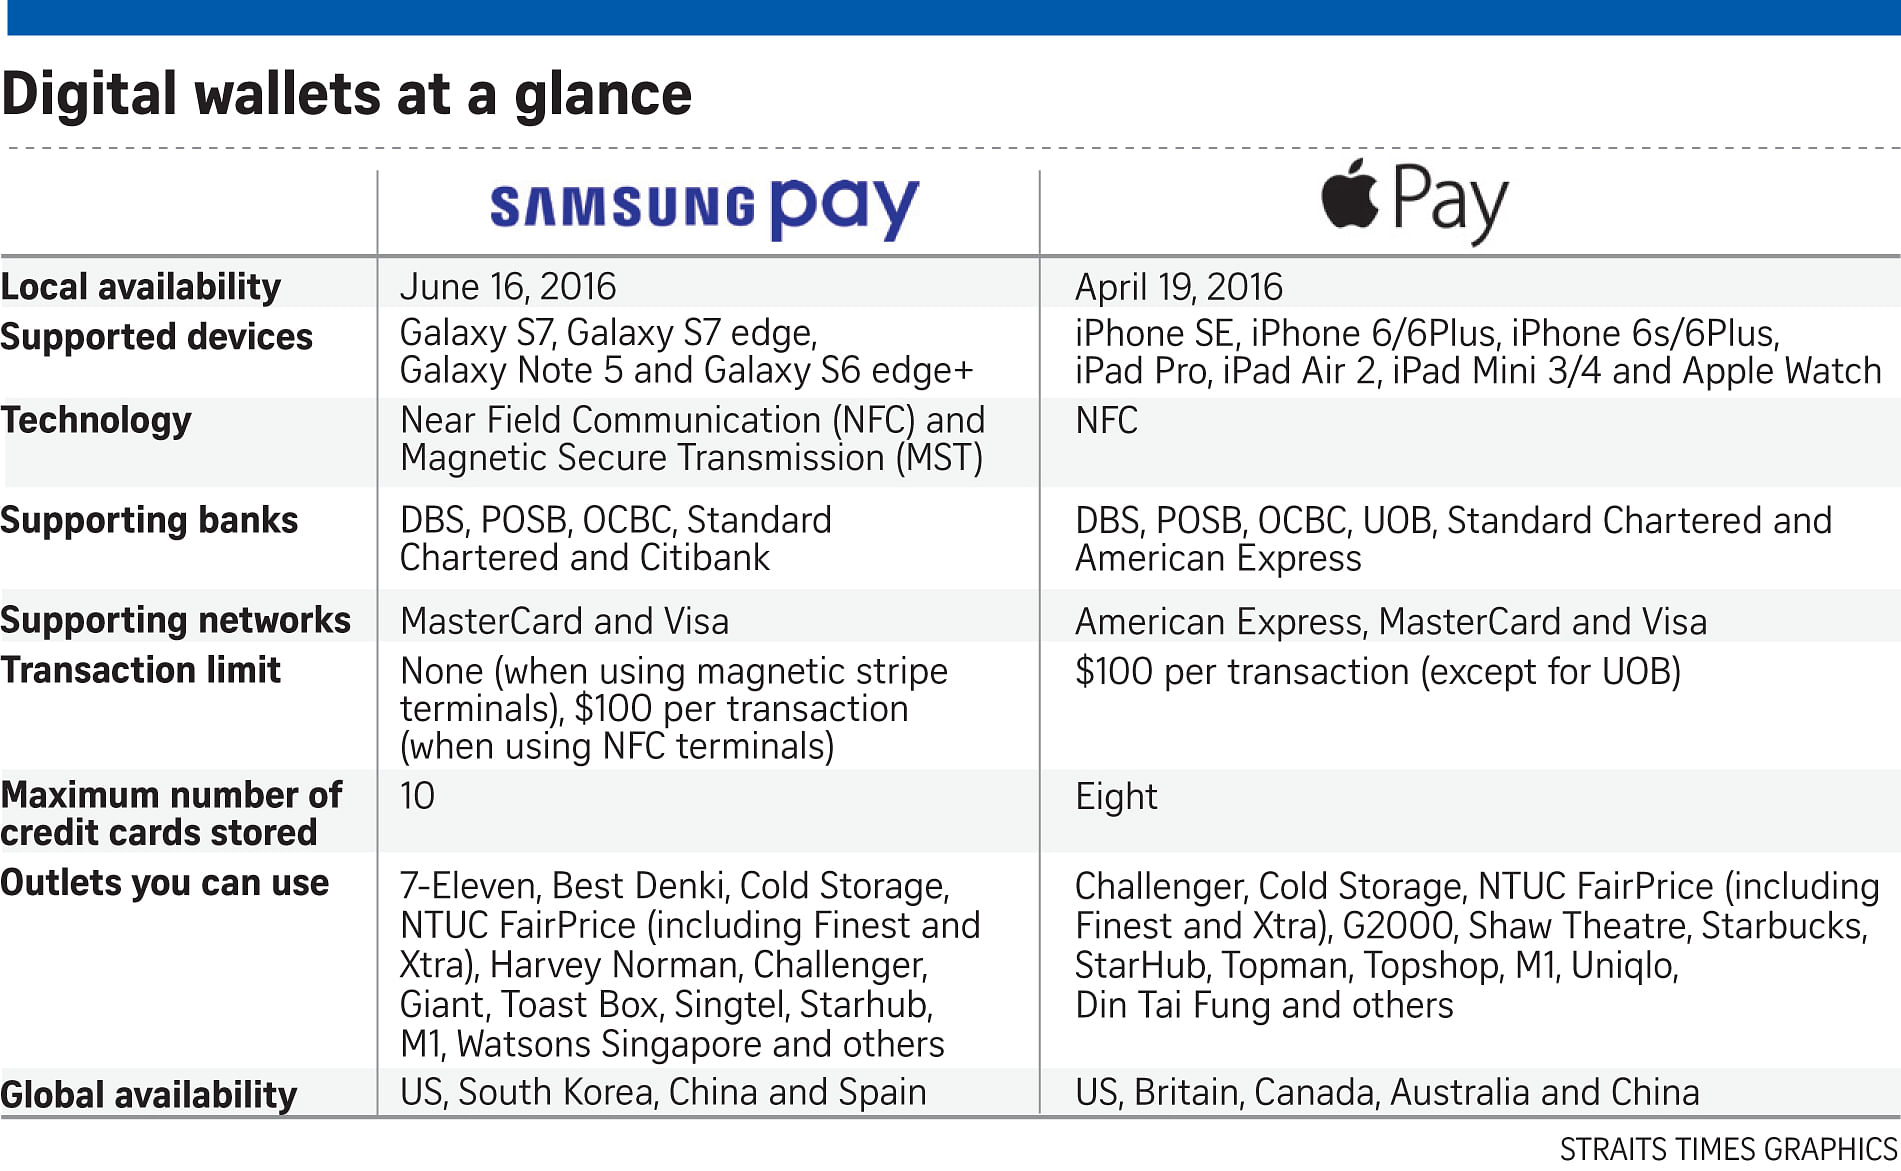 June 16 roll-out for Samsung Pay in S'pore, Tech News & Top Stories